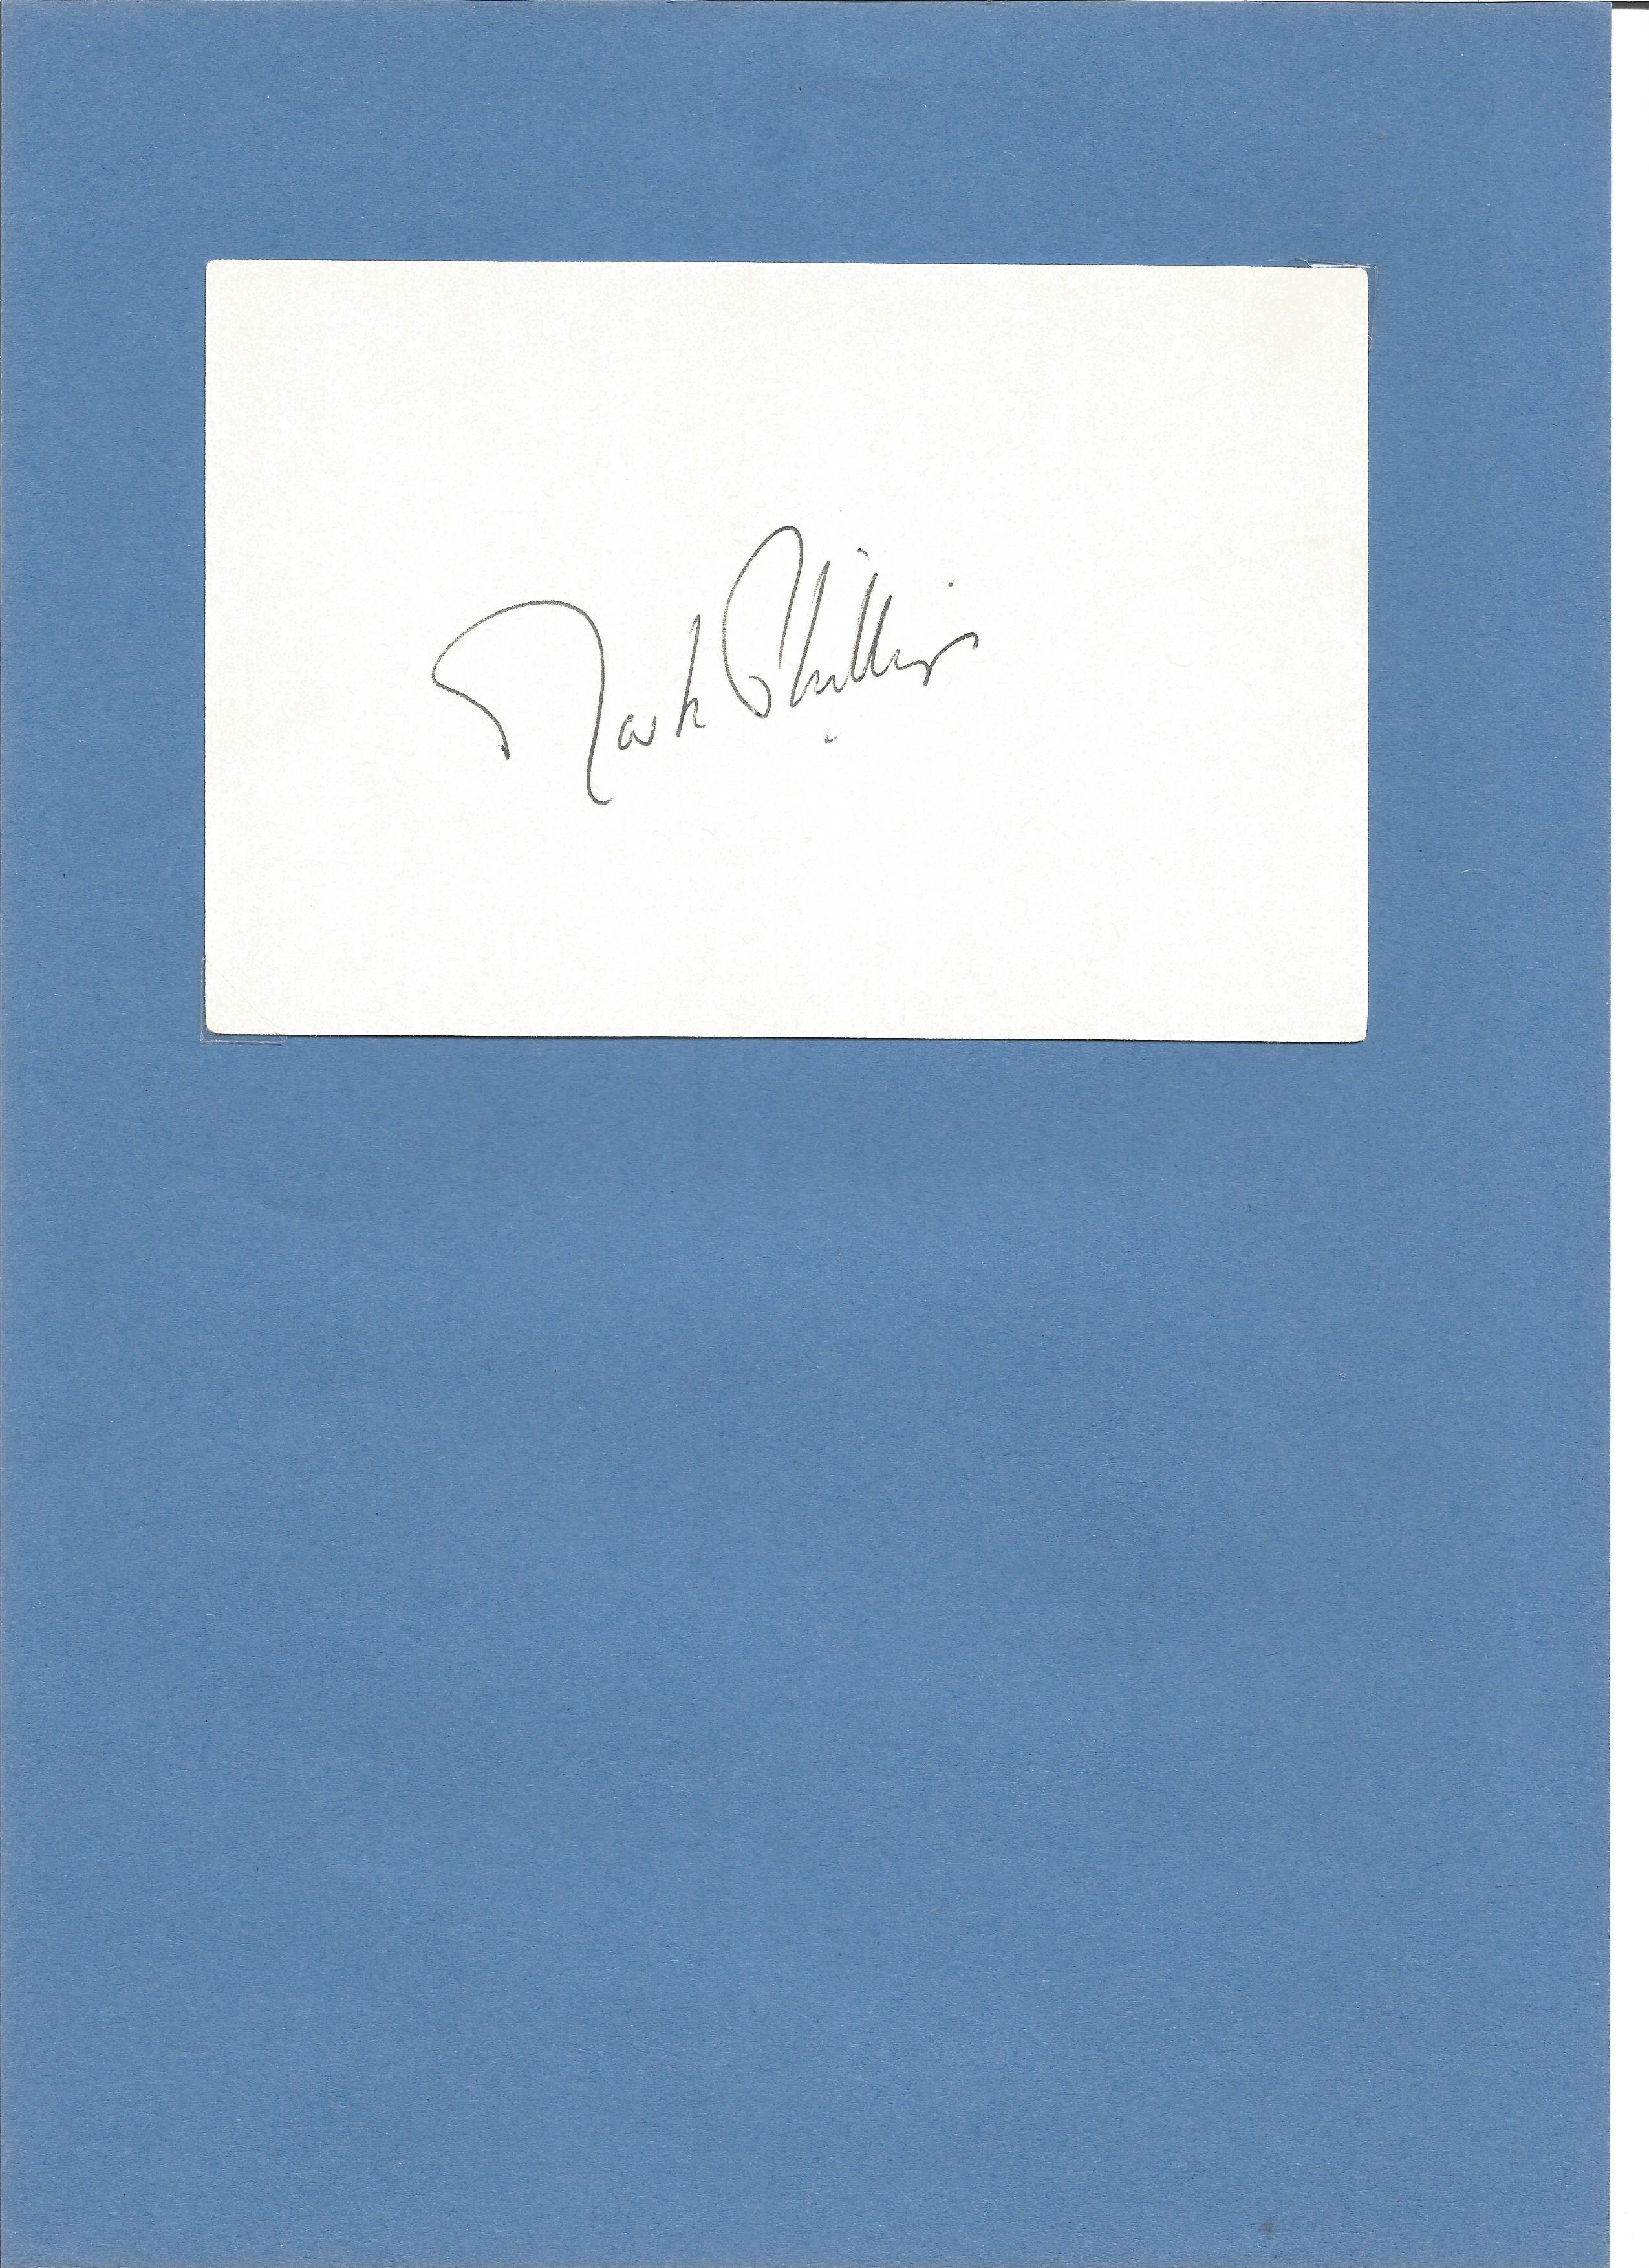 Lot 245 - Equestrian Captain Mark Phillips signed white card fixed to A4 card with corner tabs. Captain Mark